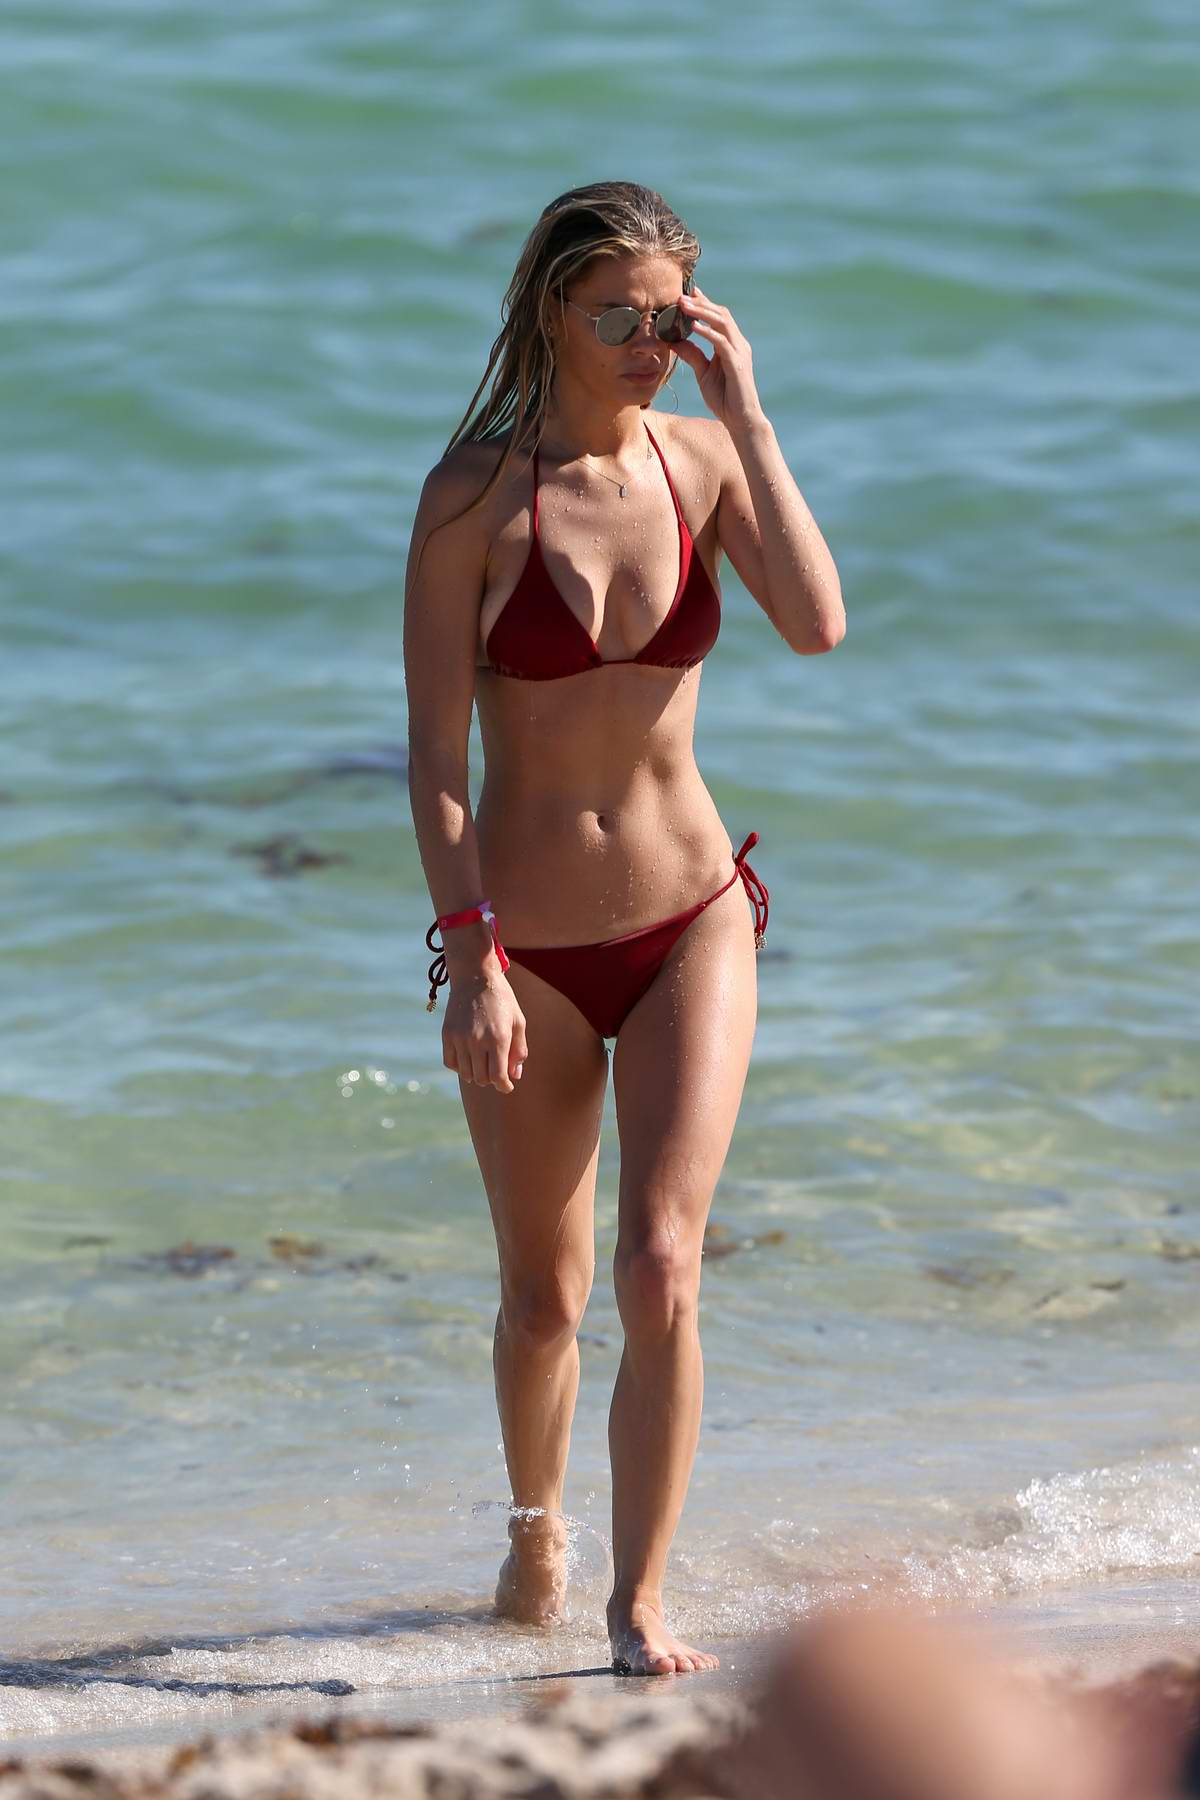 Danielle Knudson hits the ocean in a red bikini on Miami Beach, Florida